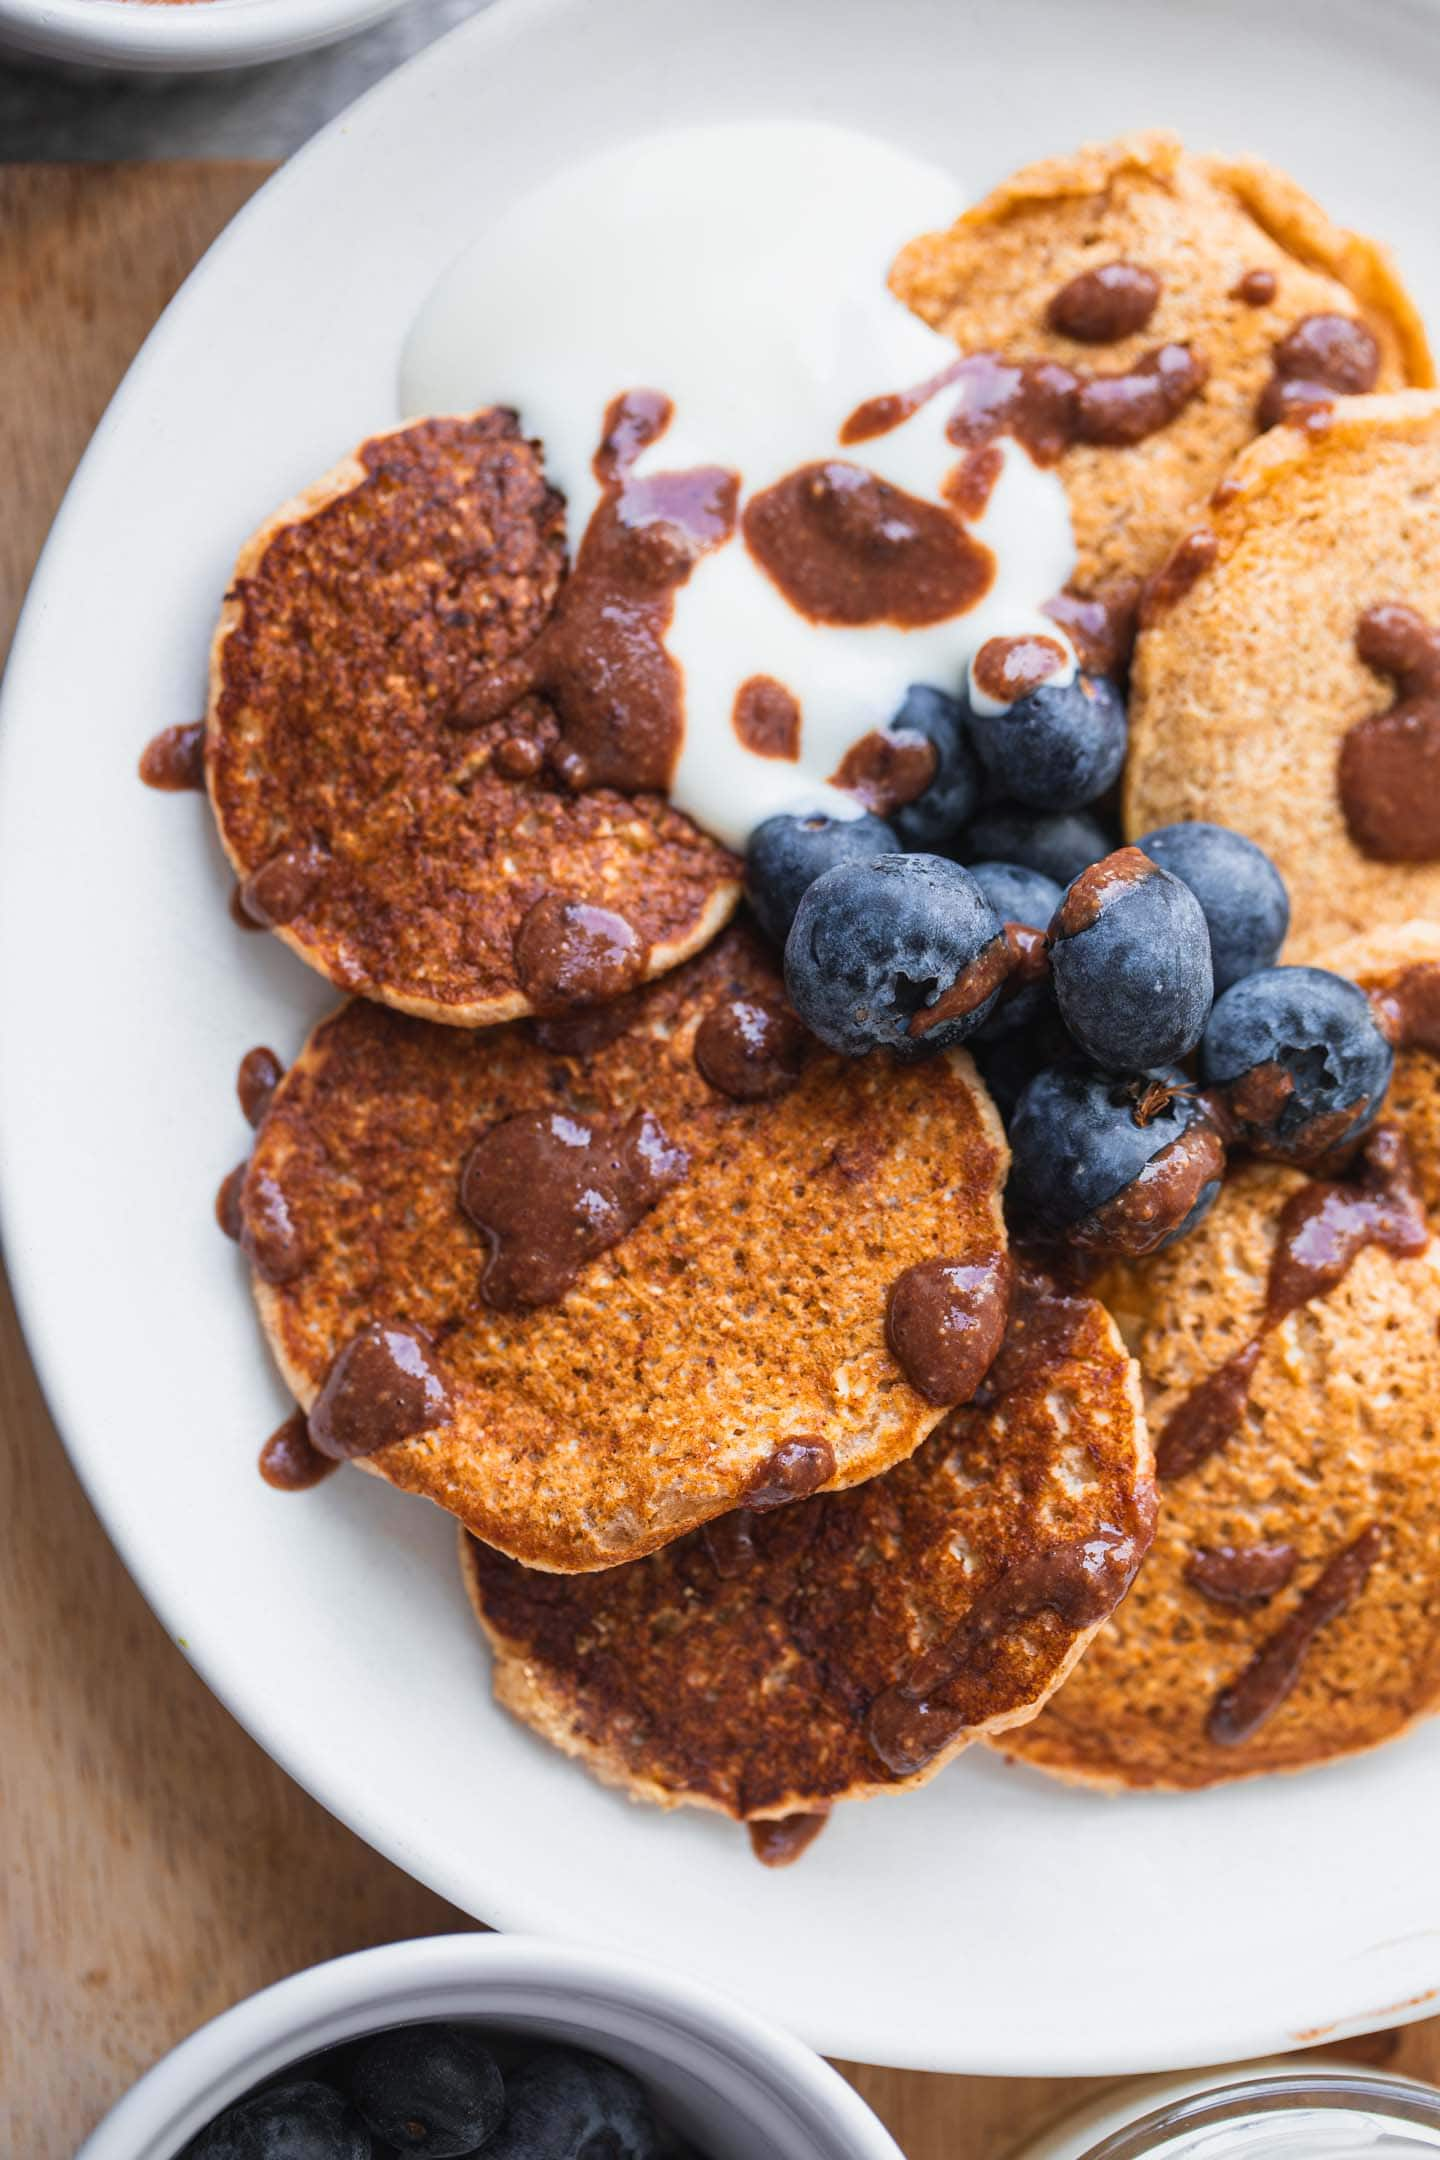 Pancakes with berries and soy yoghurt